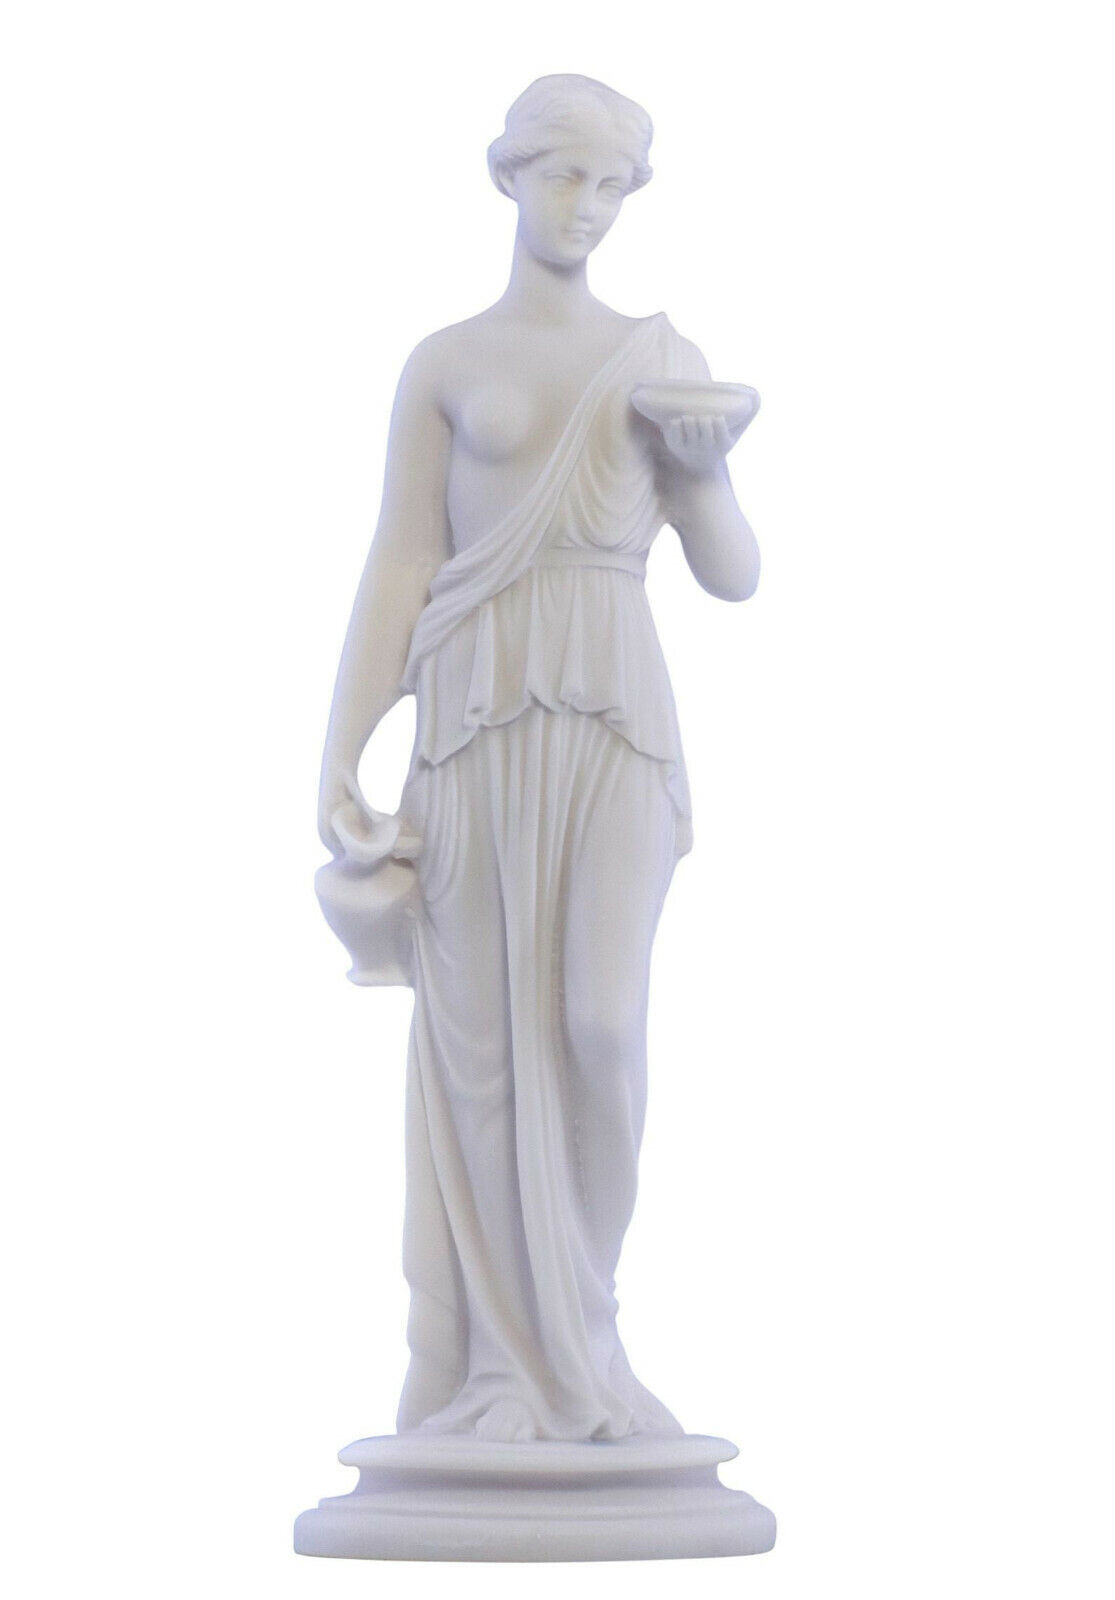 Goddess of Youth Hebe Juventus serving Nectar Statue Figure Sculpture 9.4 inches